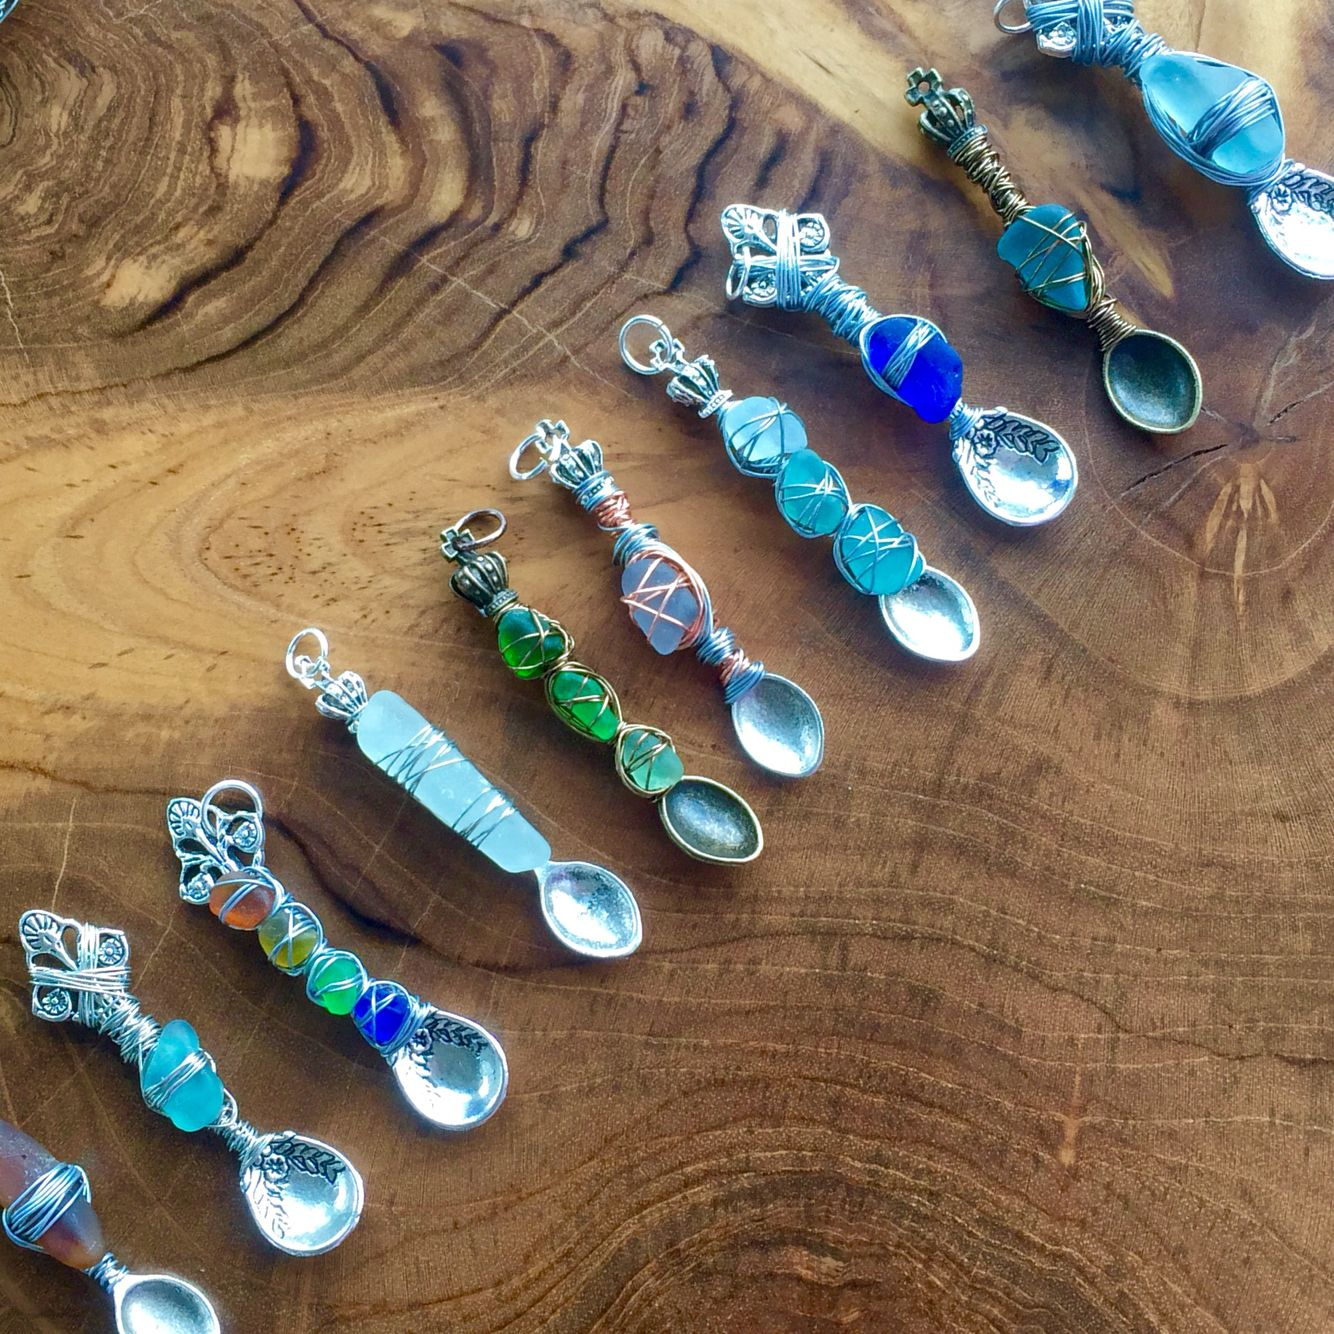 Pin on Spoon necklaces with sea glass from Mermaid Sea Gems